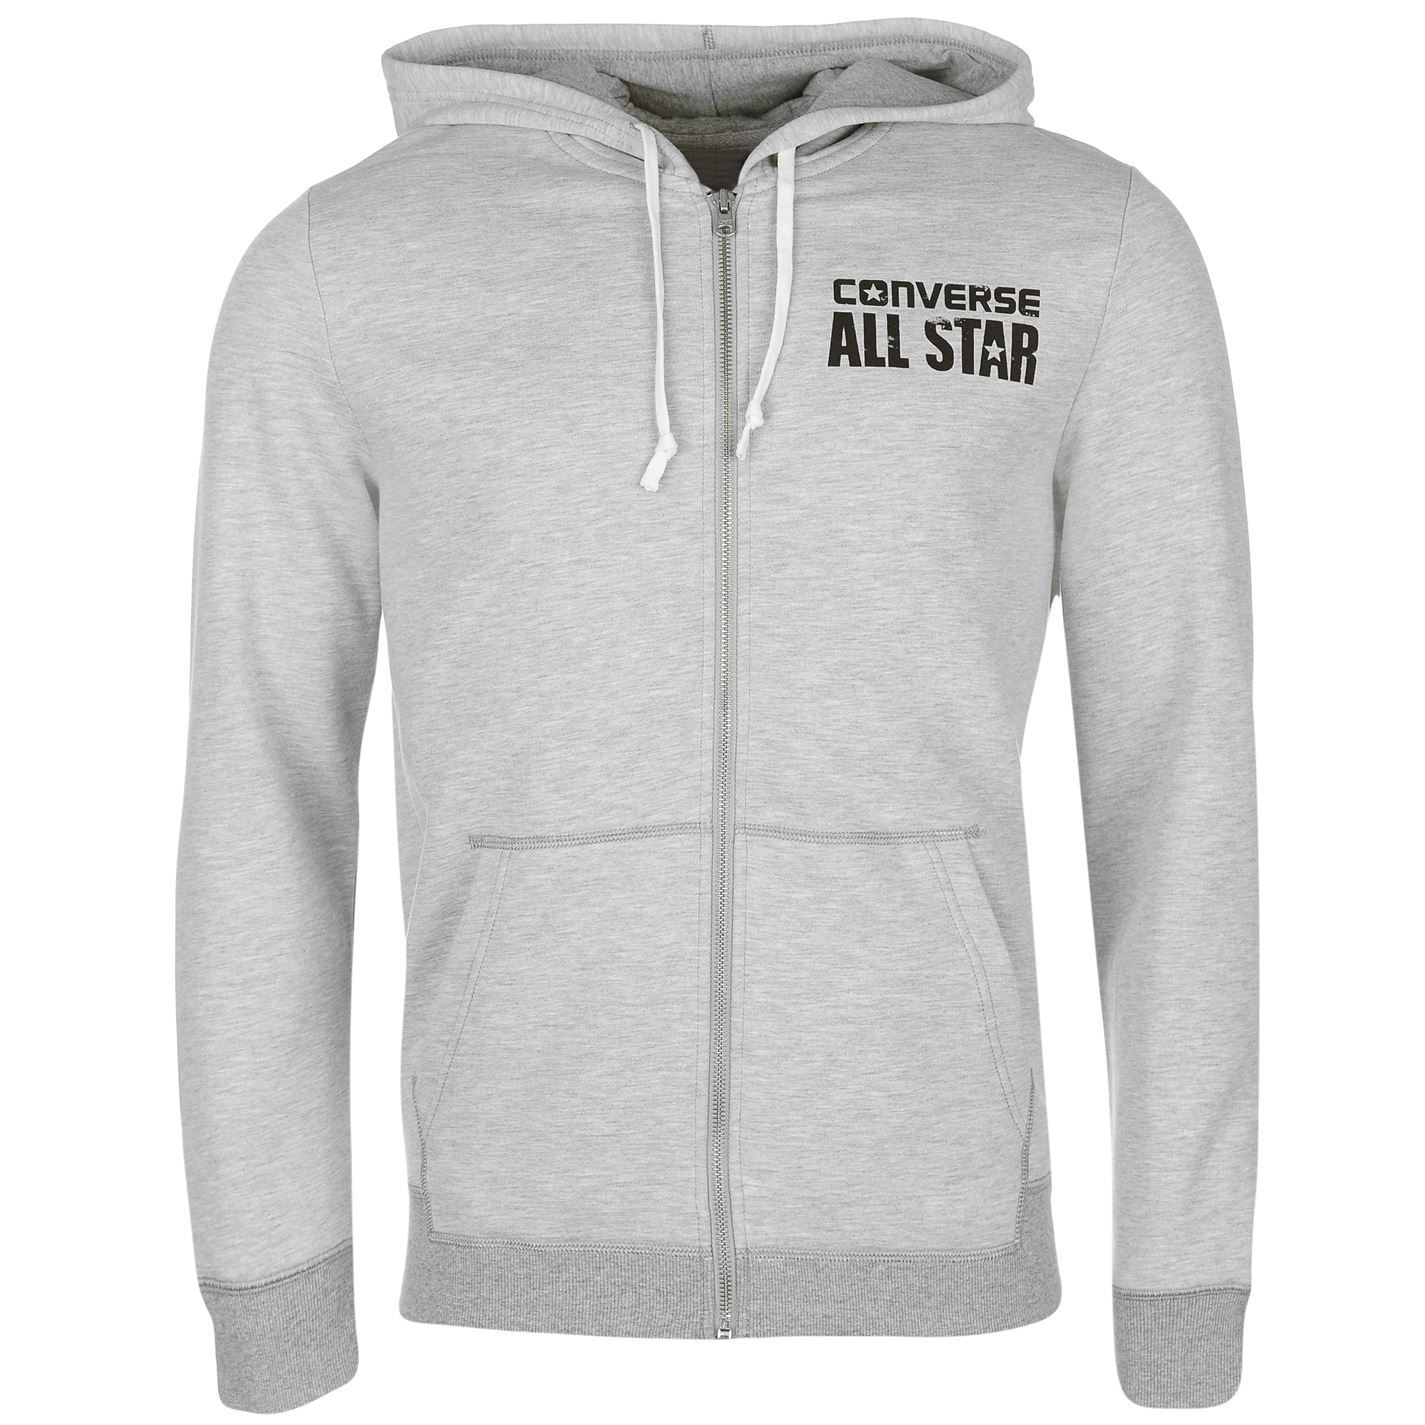 5eeae100901e ... Converse All Star Full Zip Hoody Jacket Mens Grey Hoodie Sweatshirt  Sweater Top ...